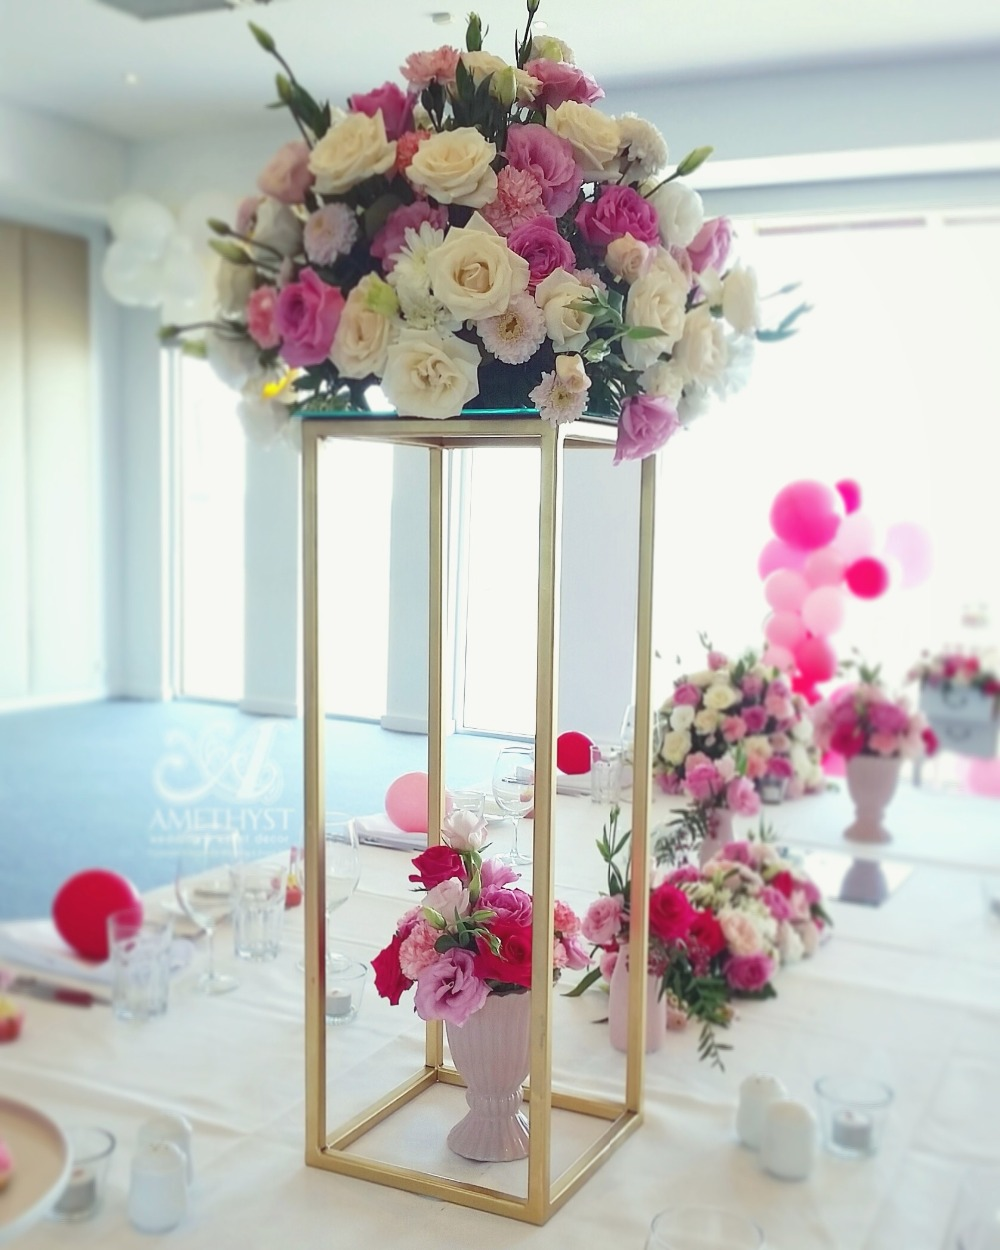 Us 228 0 5 Off Wedding Pillars Metal Gold Color Flower Vase Table Centerpiece Wedding Decoration 10pcs Lot Free Shipping In Party Diy Decorations